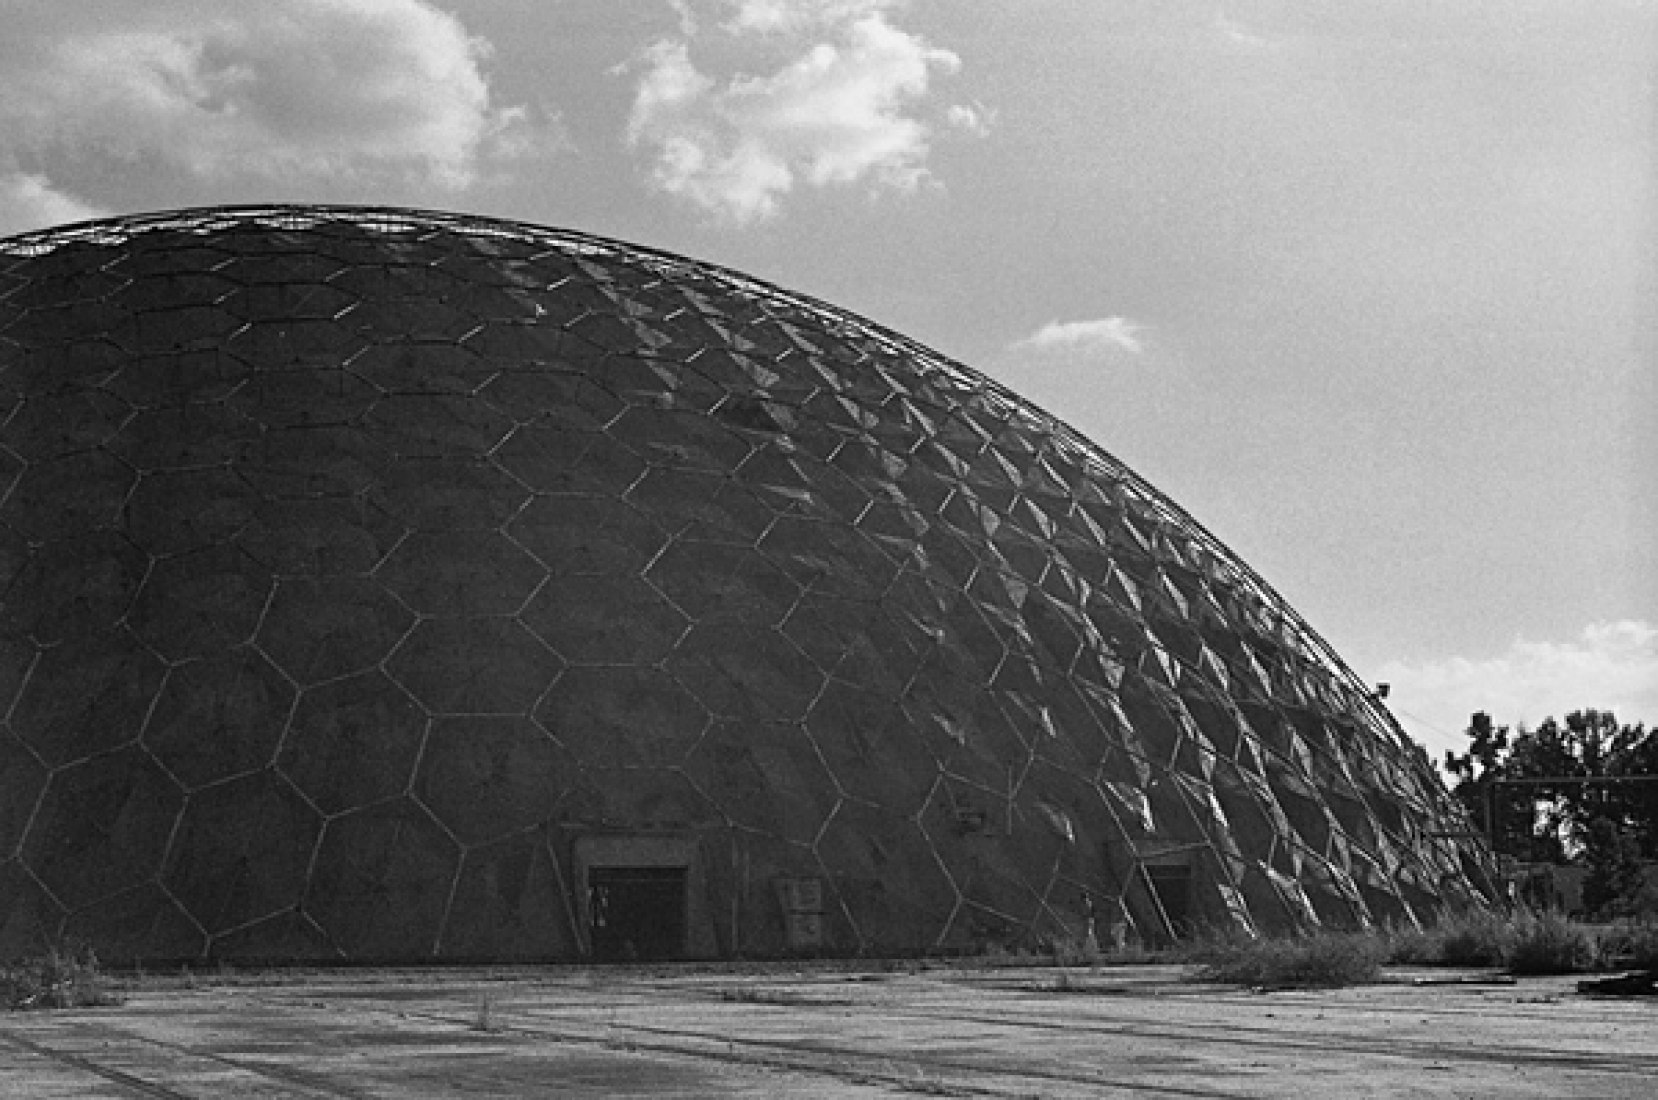 The story of Buckminster Fuller and the Union Tank Car Dome